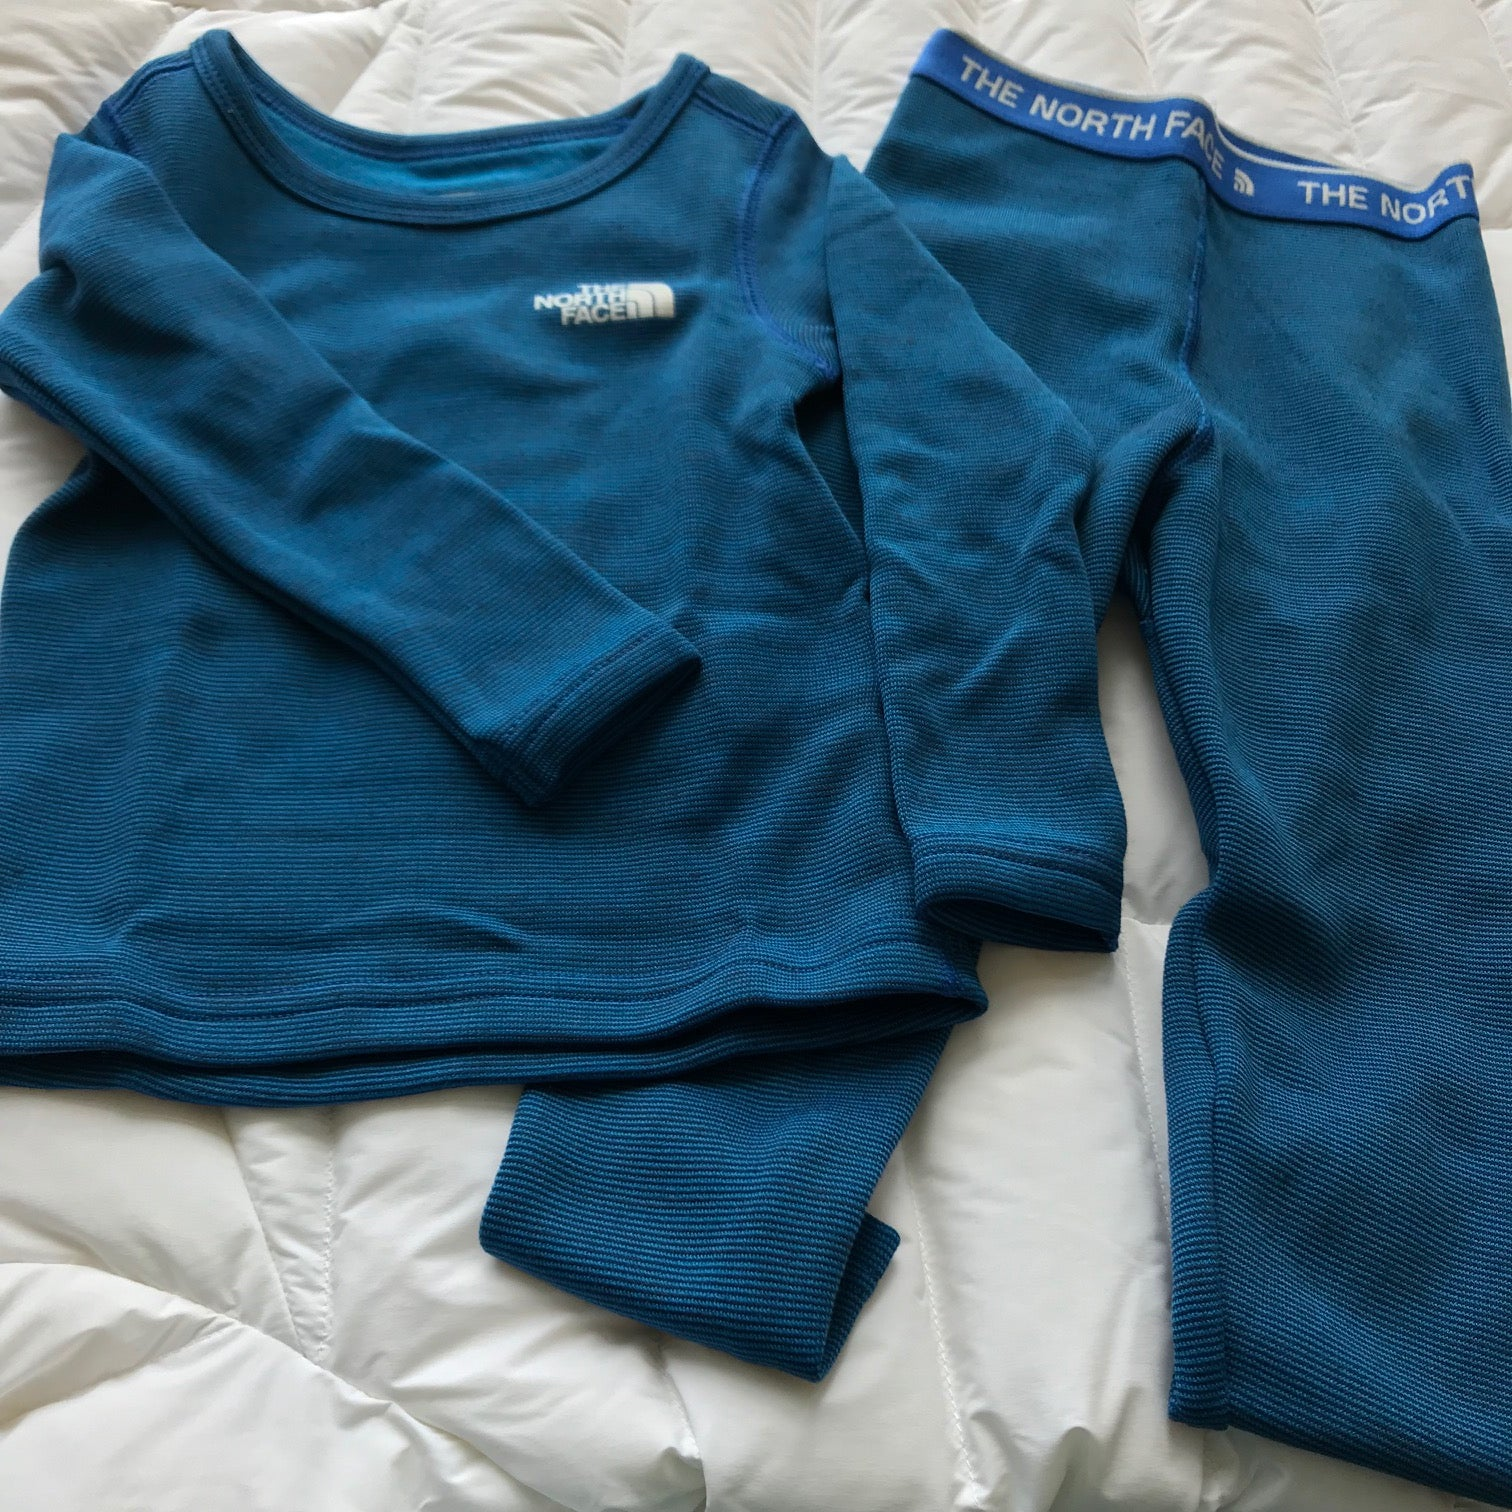 3f71973de Toddlers' The North Face | Toddler Baselayer Set | Nautical Blue